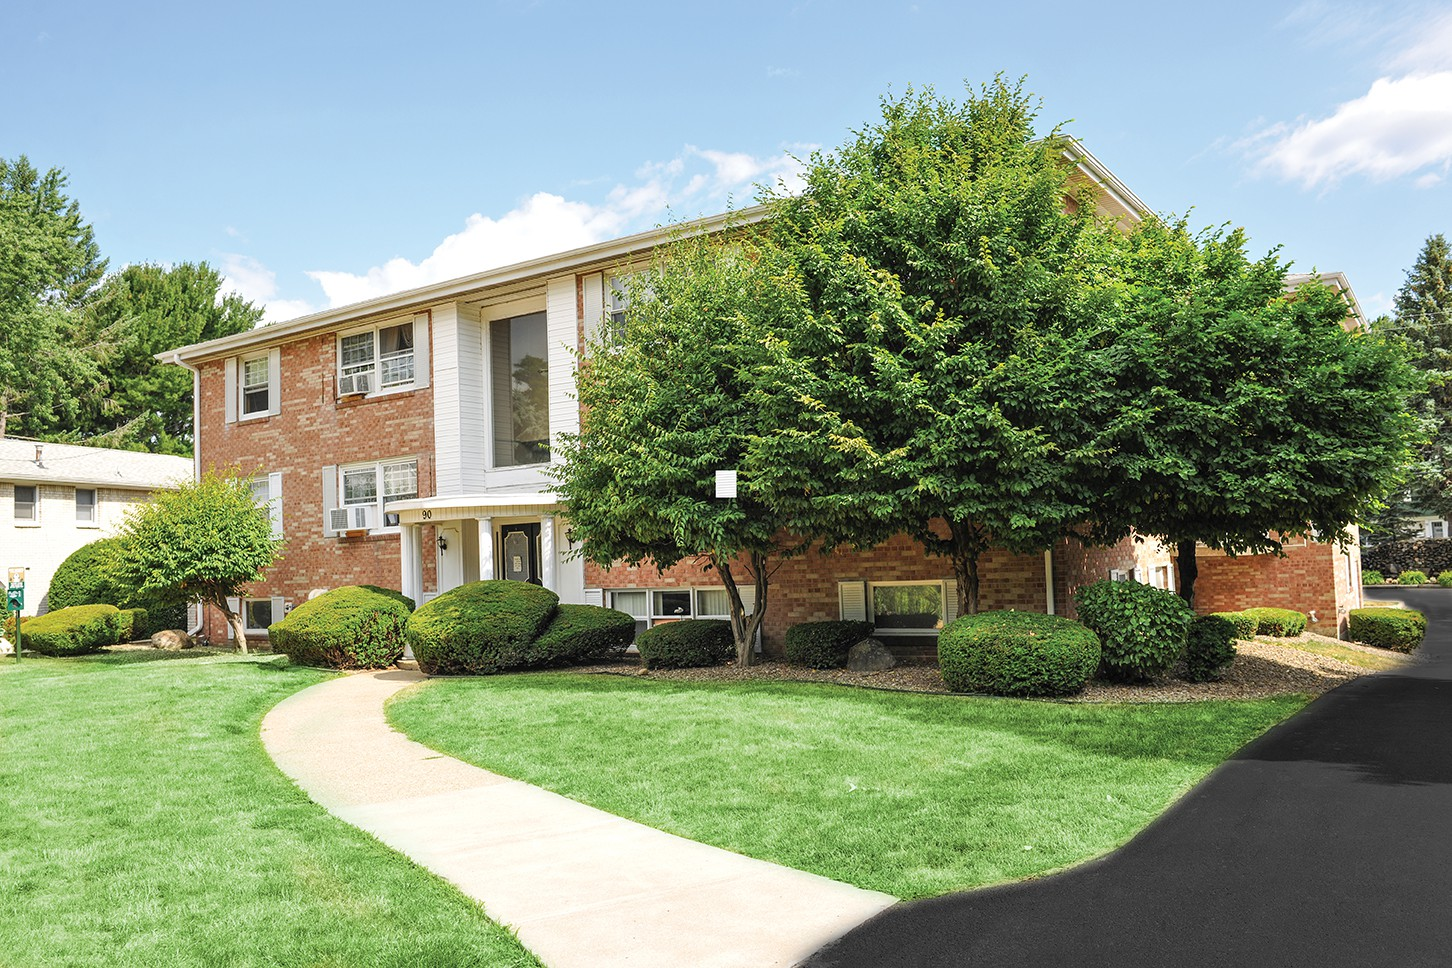 Apartments Near Hilbert Green Lake Apartments & Townhomes for Hilbert College Students in Hamburg, NY